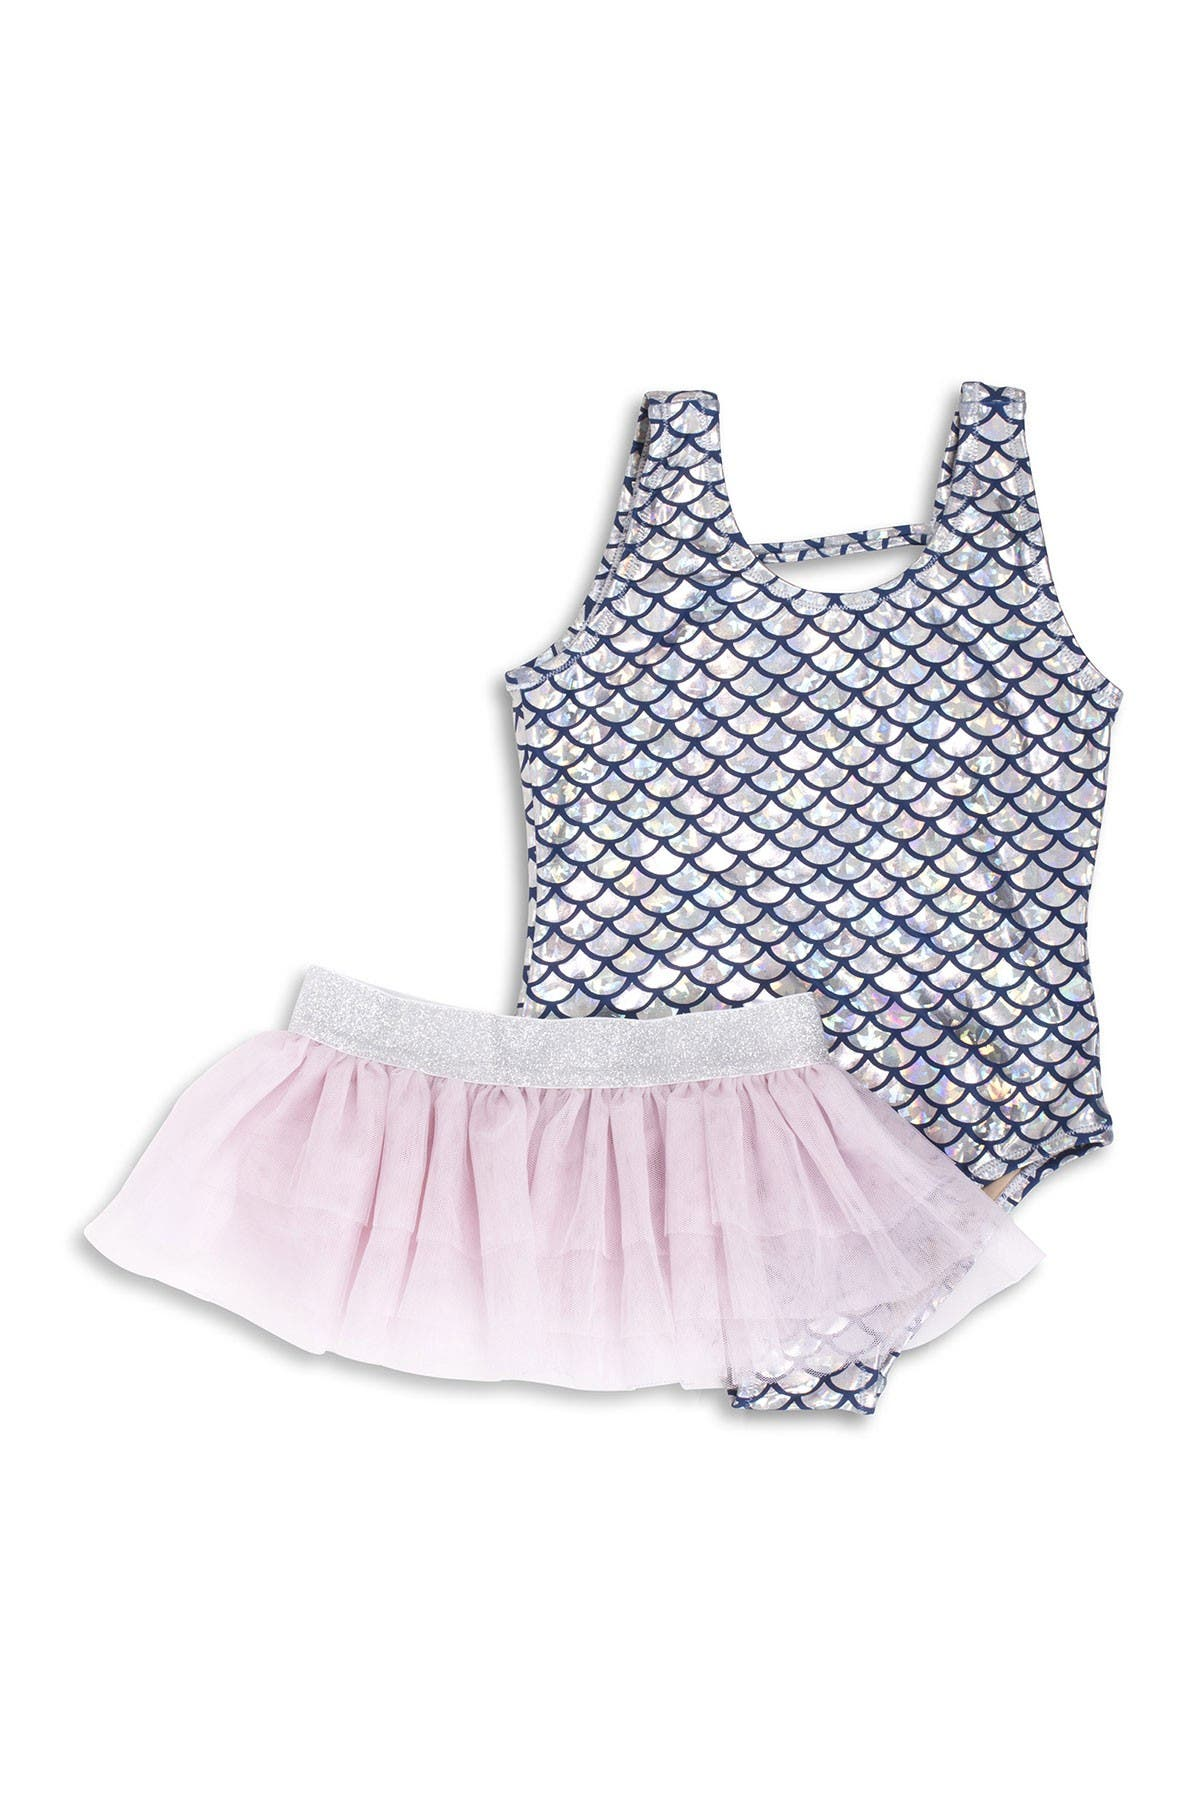 Image of Shade Critters Silver Metallic One-Piece Swimsuit & Tutu Set